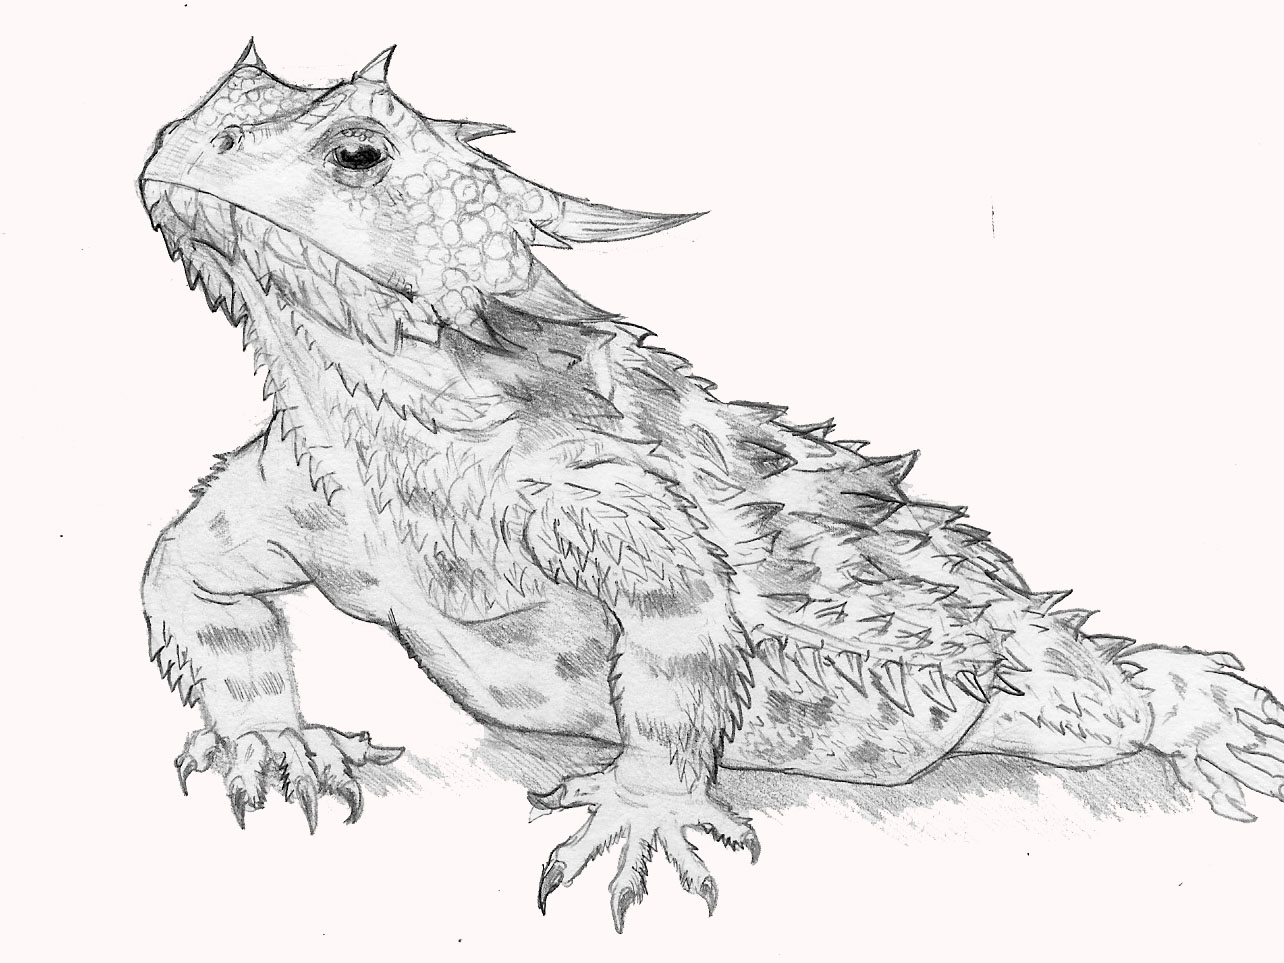 Horned Lizard clipart #14, Download drawings